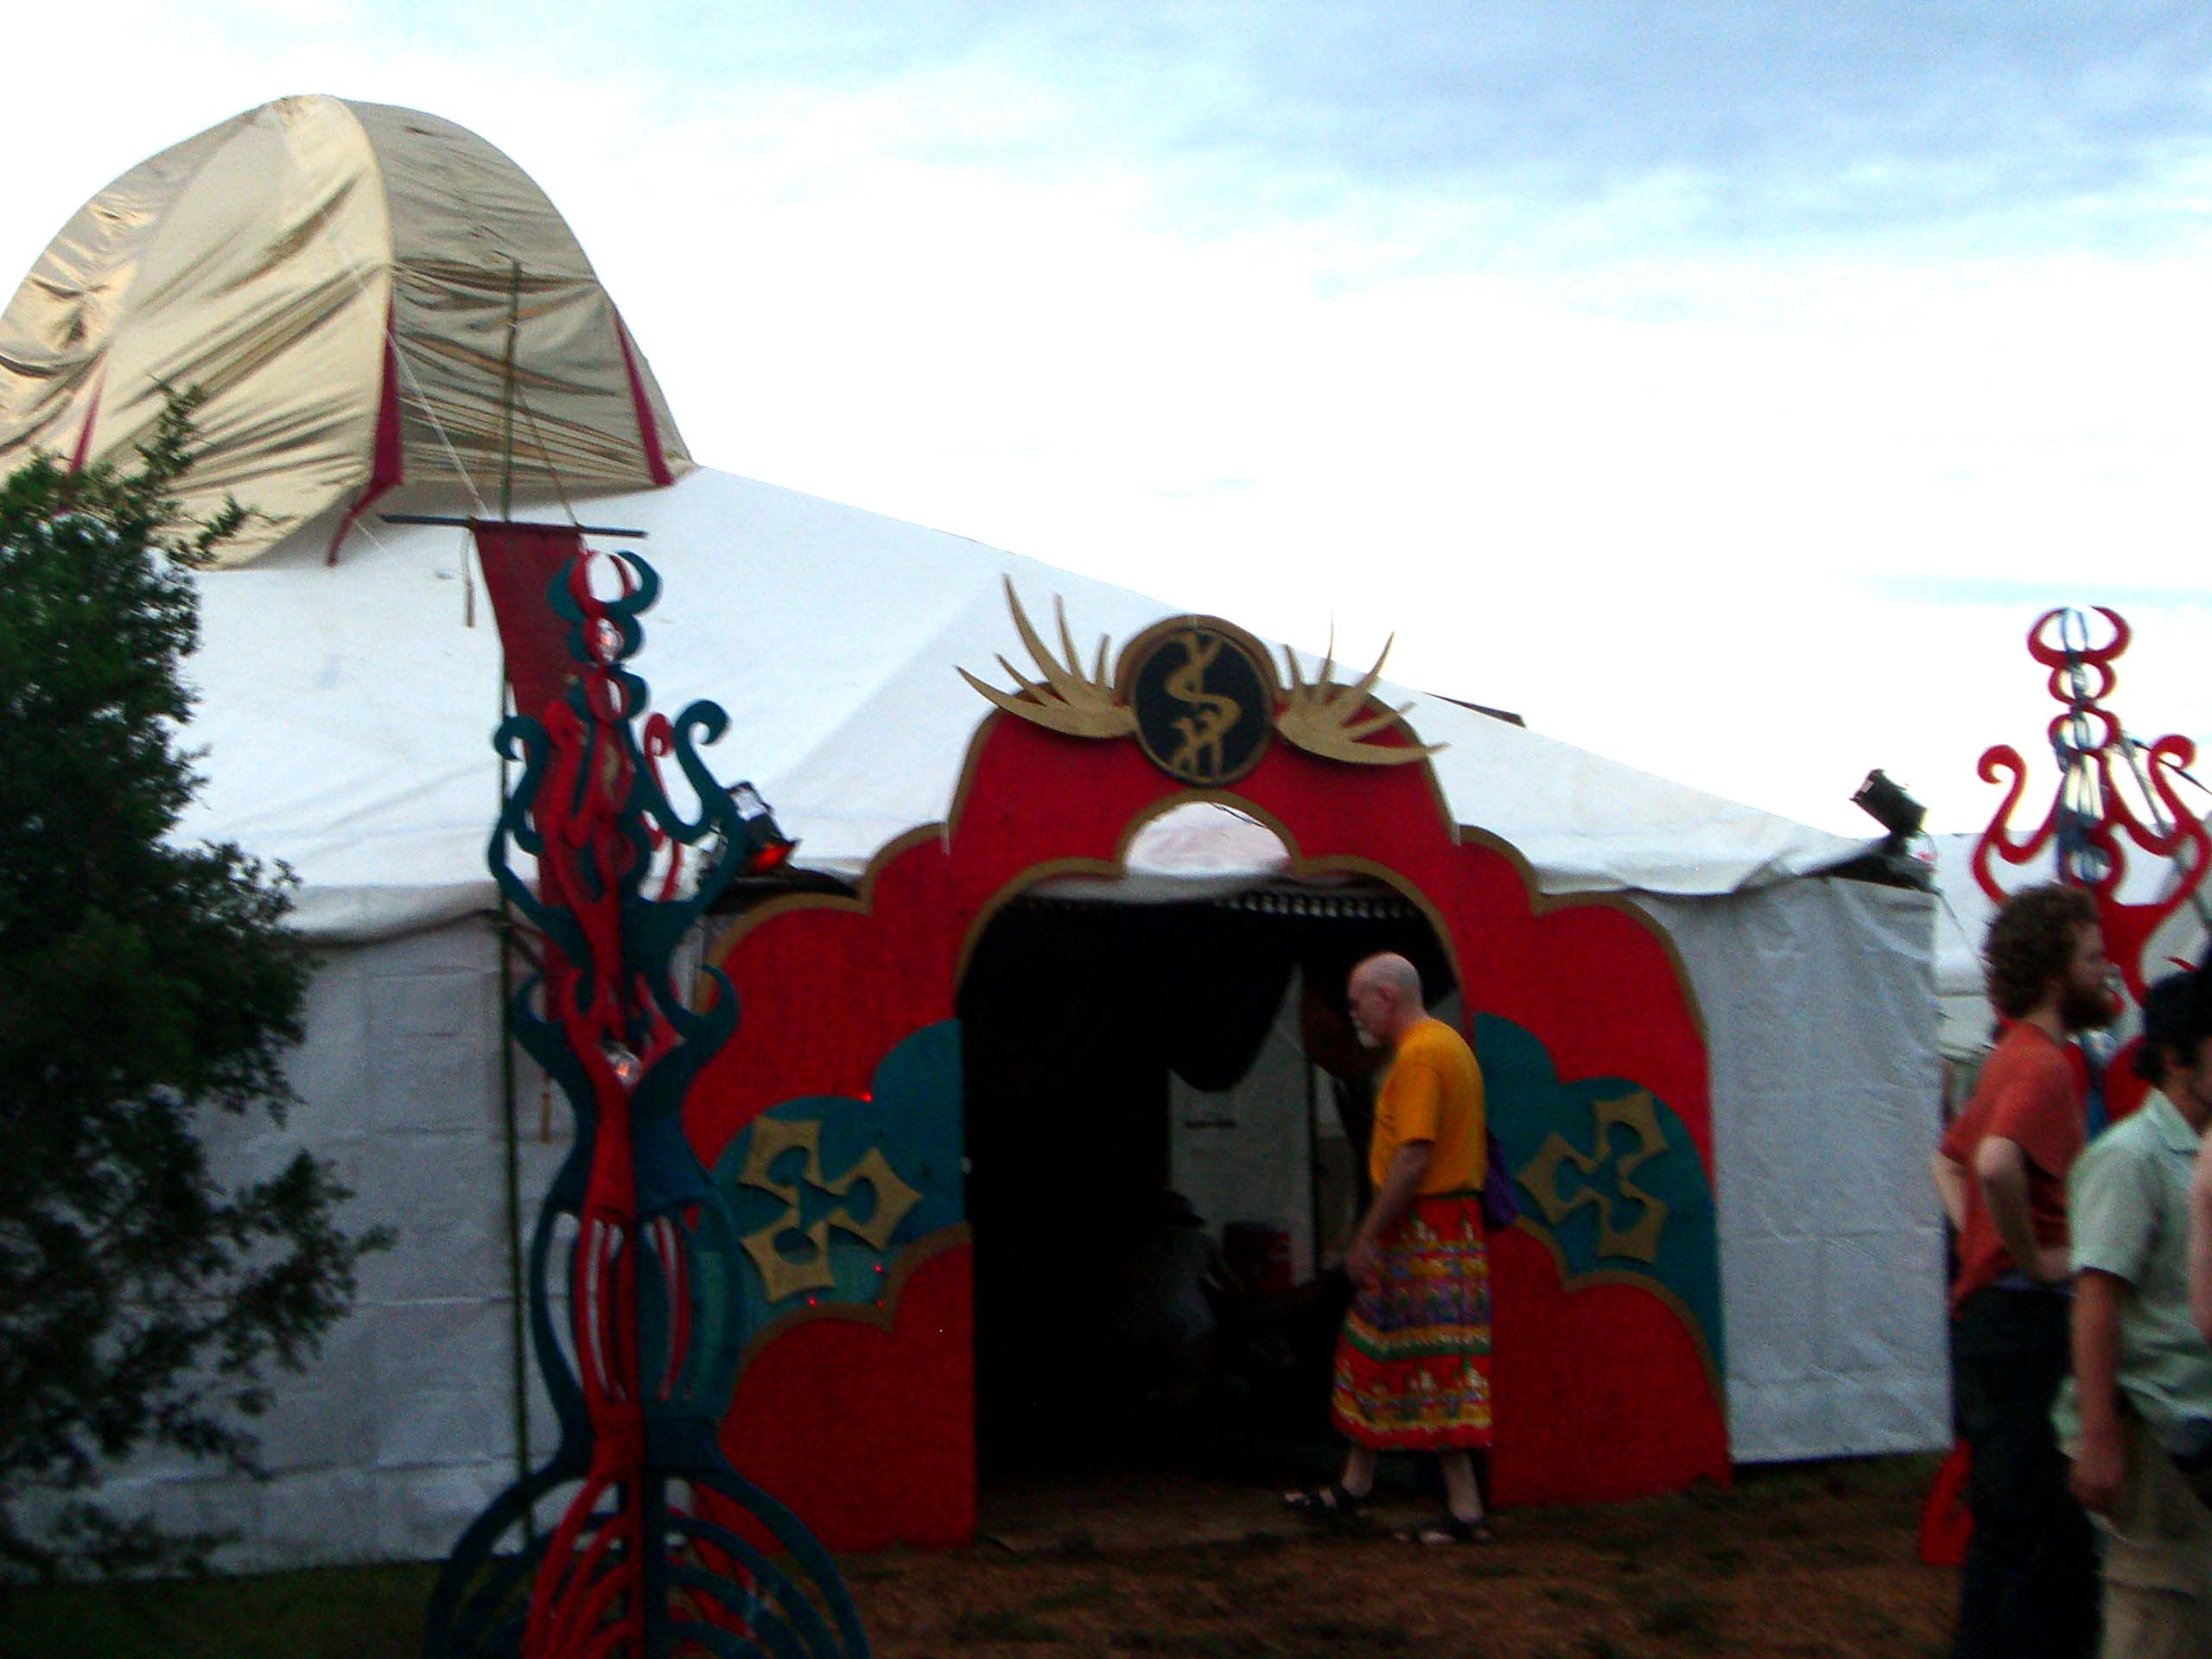 A tent in the Ish camp at Burning Flipside 2007